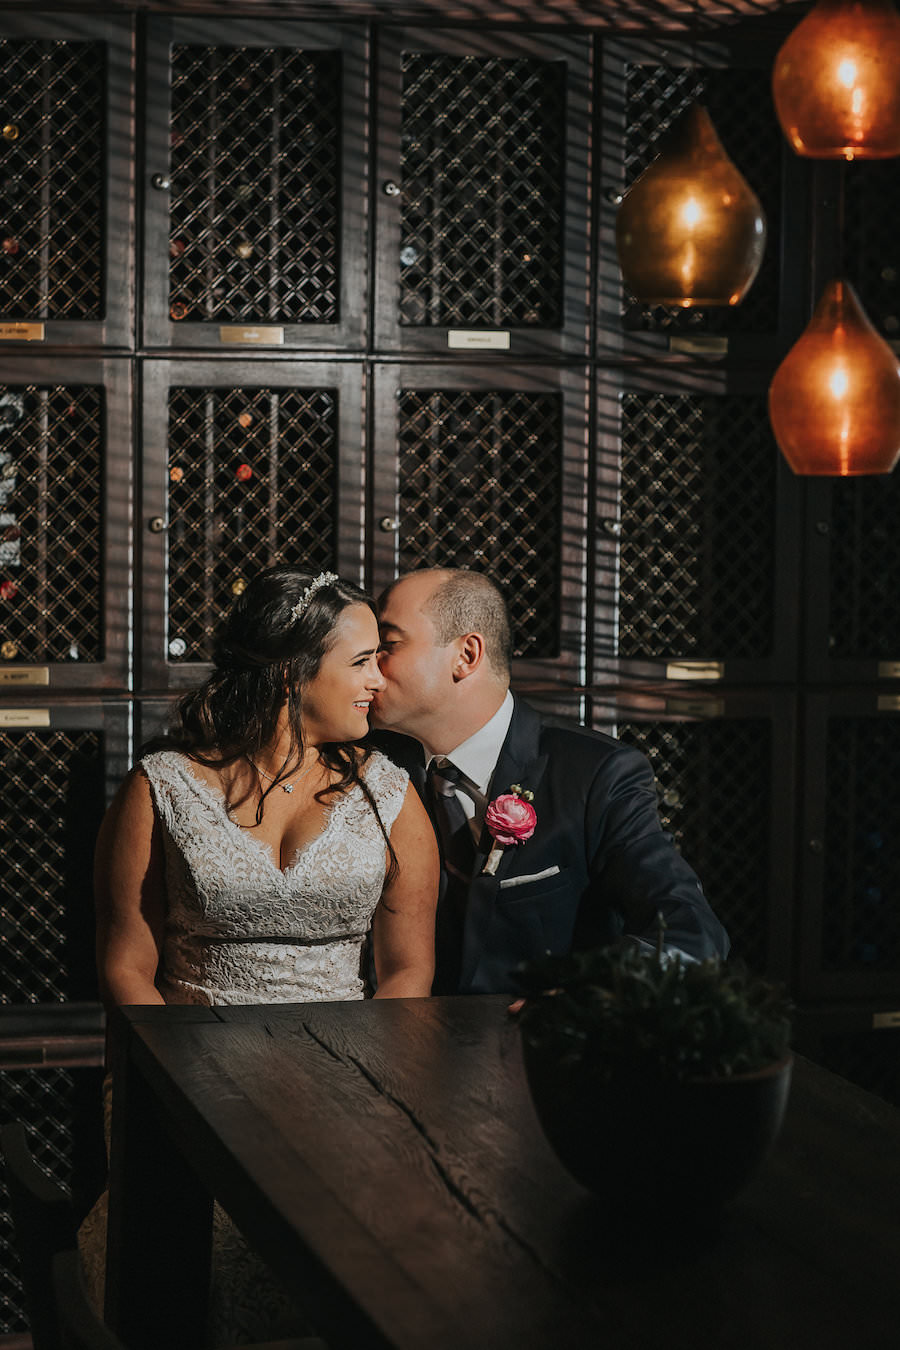 Bride and Groom Wedding Portrait in Wine Cellar | Downtown Tampa Wedding Photographer Rad Red Creative | Private Event Venue The Tampa Club